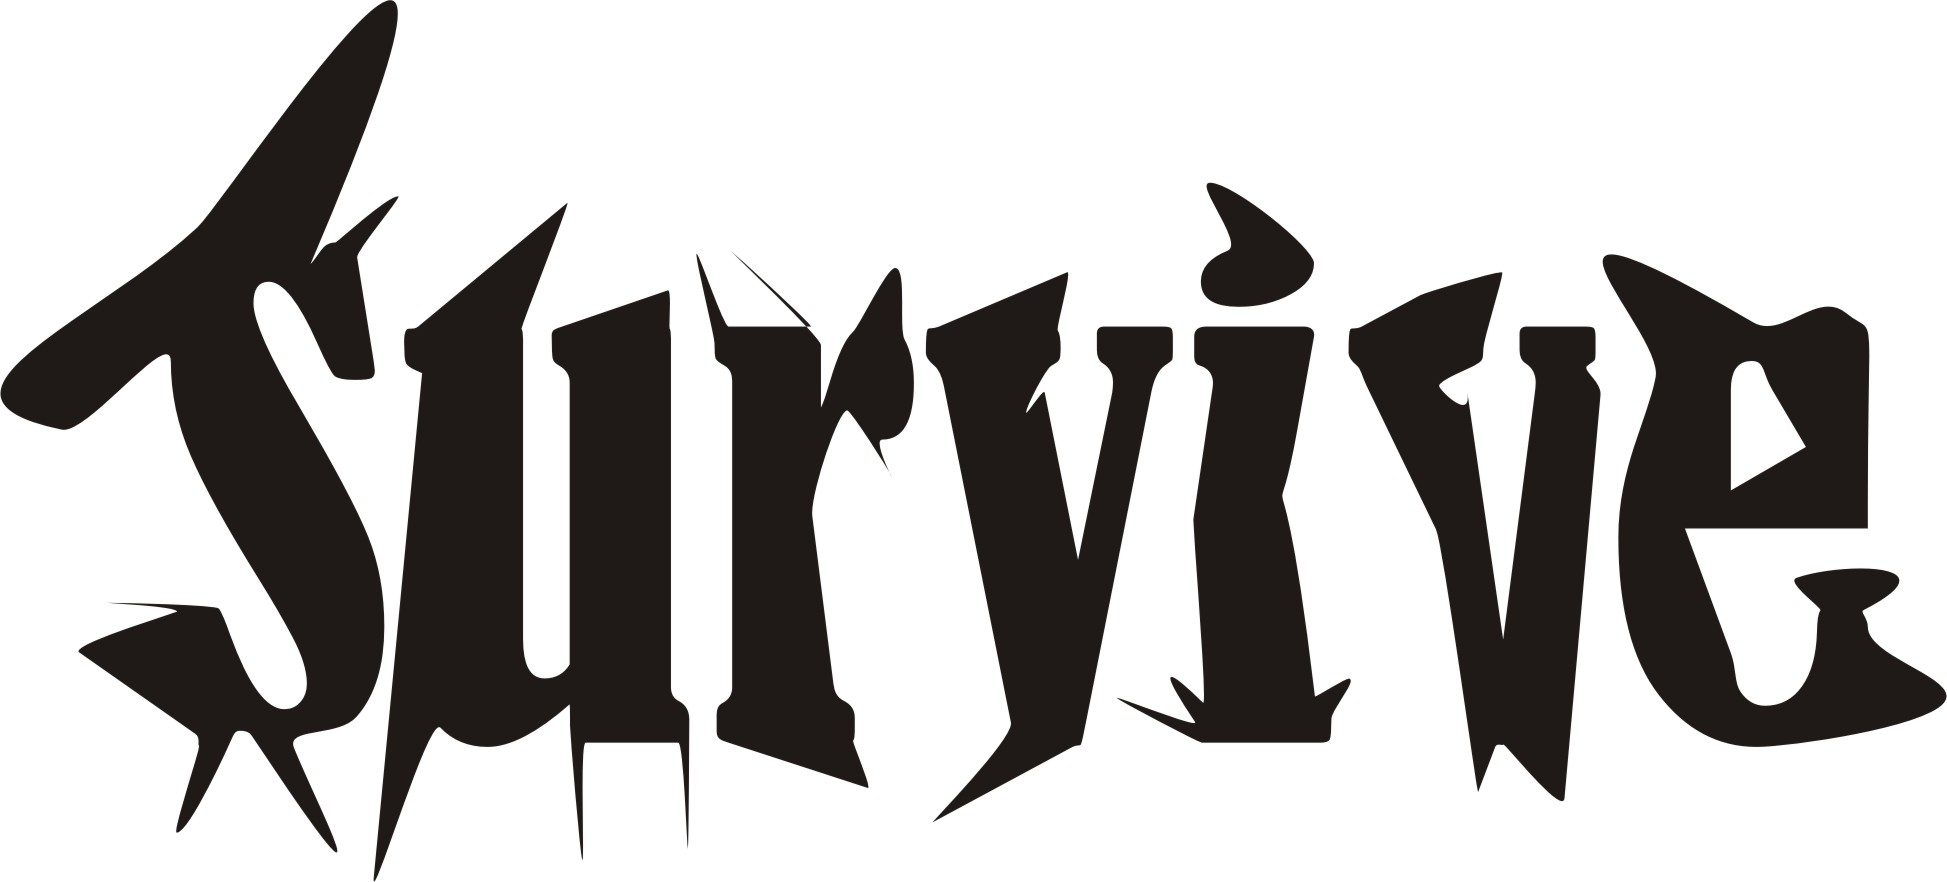 Survival word drum